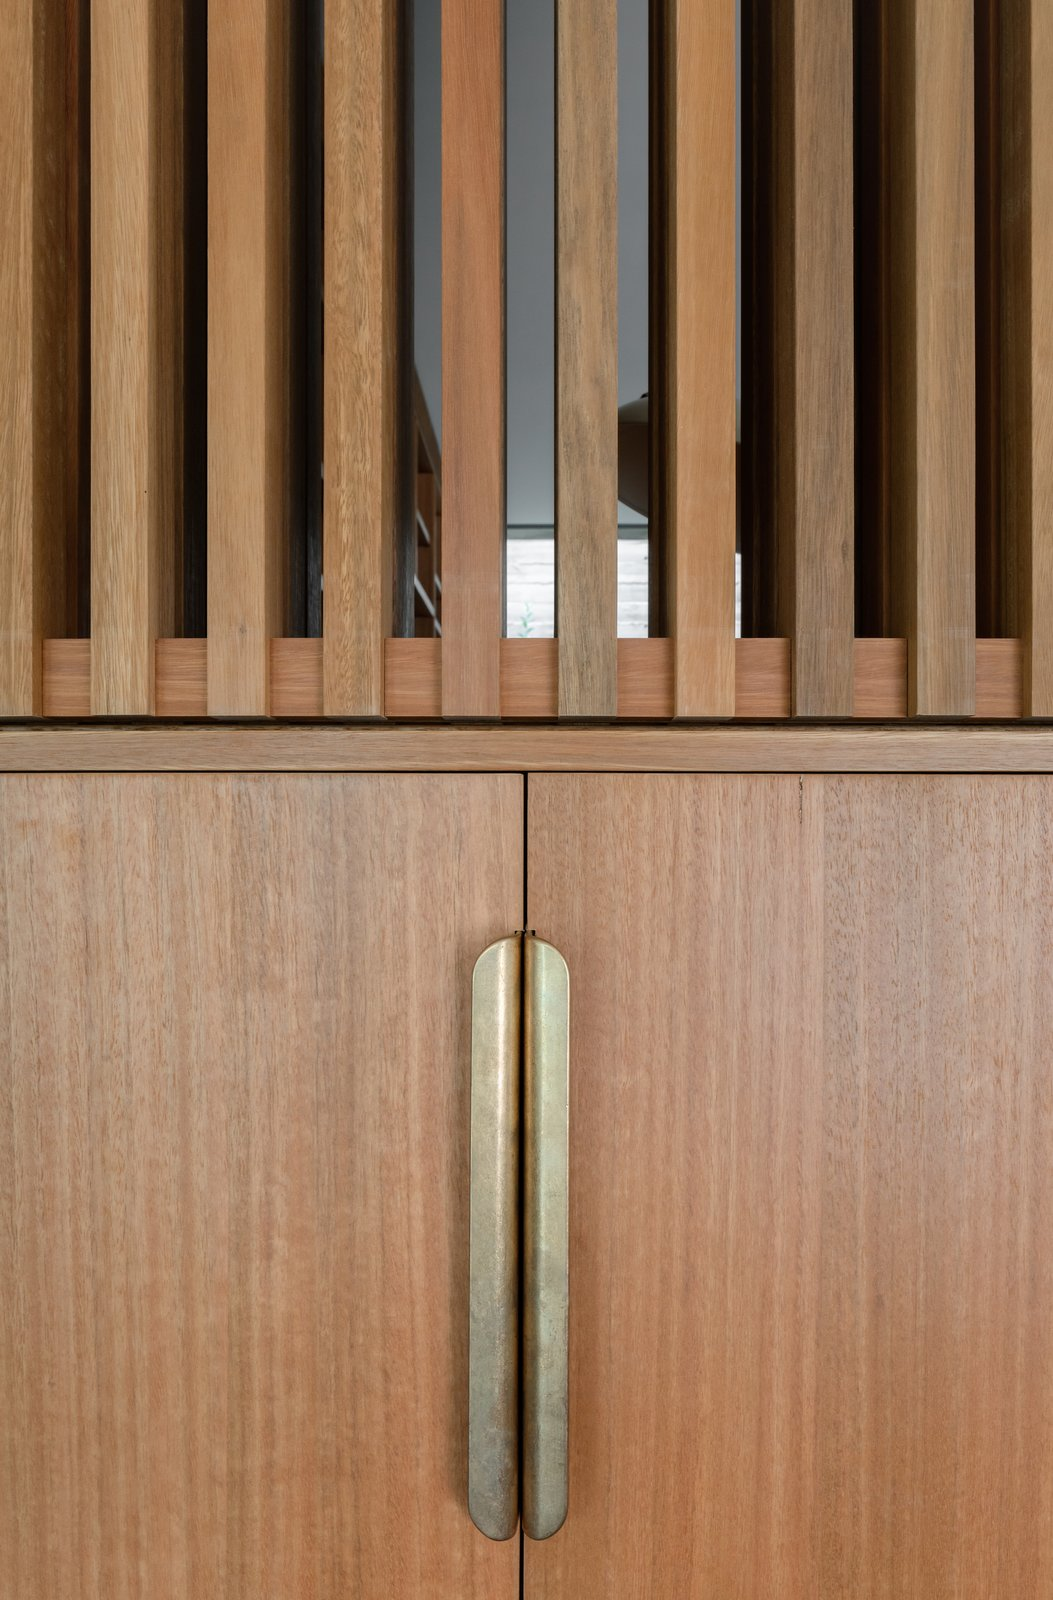 Cabinetry detail at Church Point House by CHROFI.